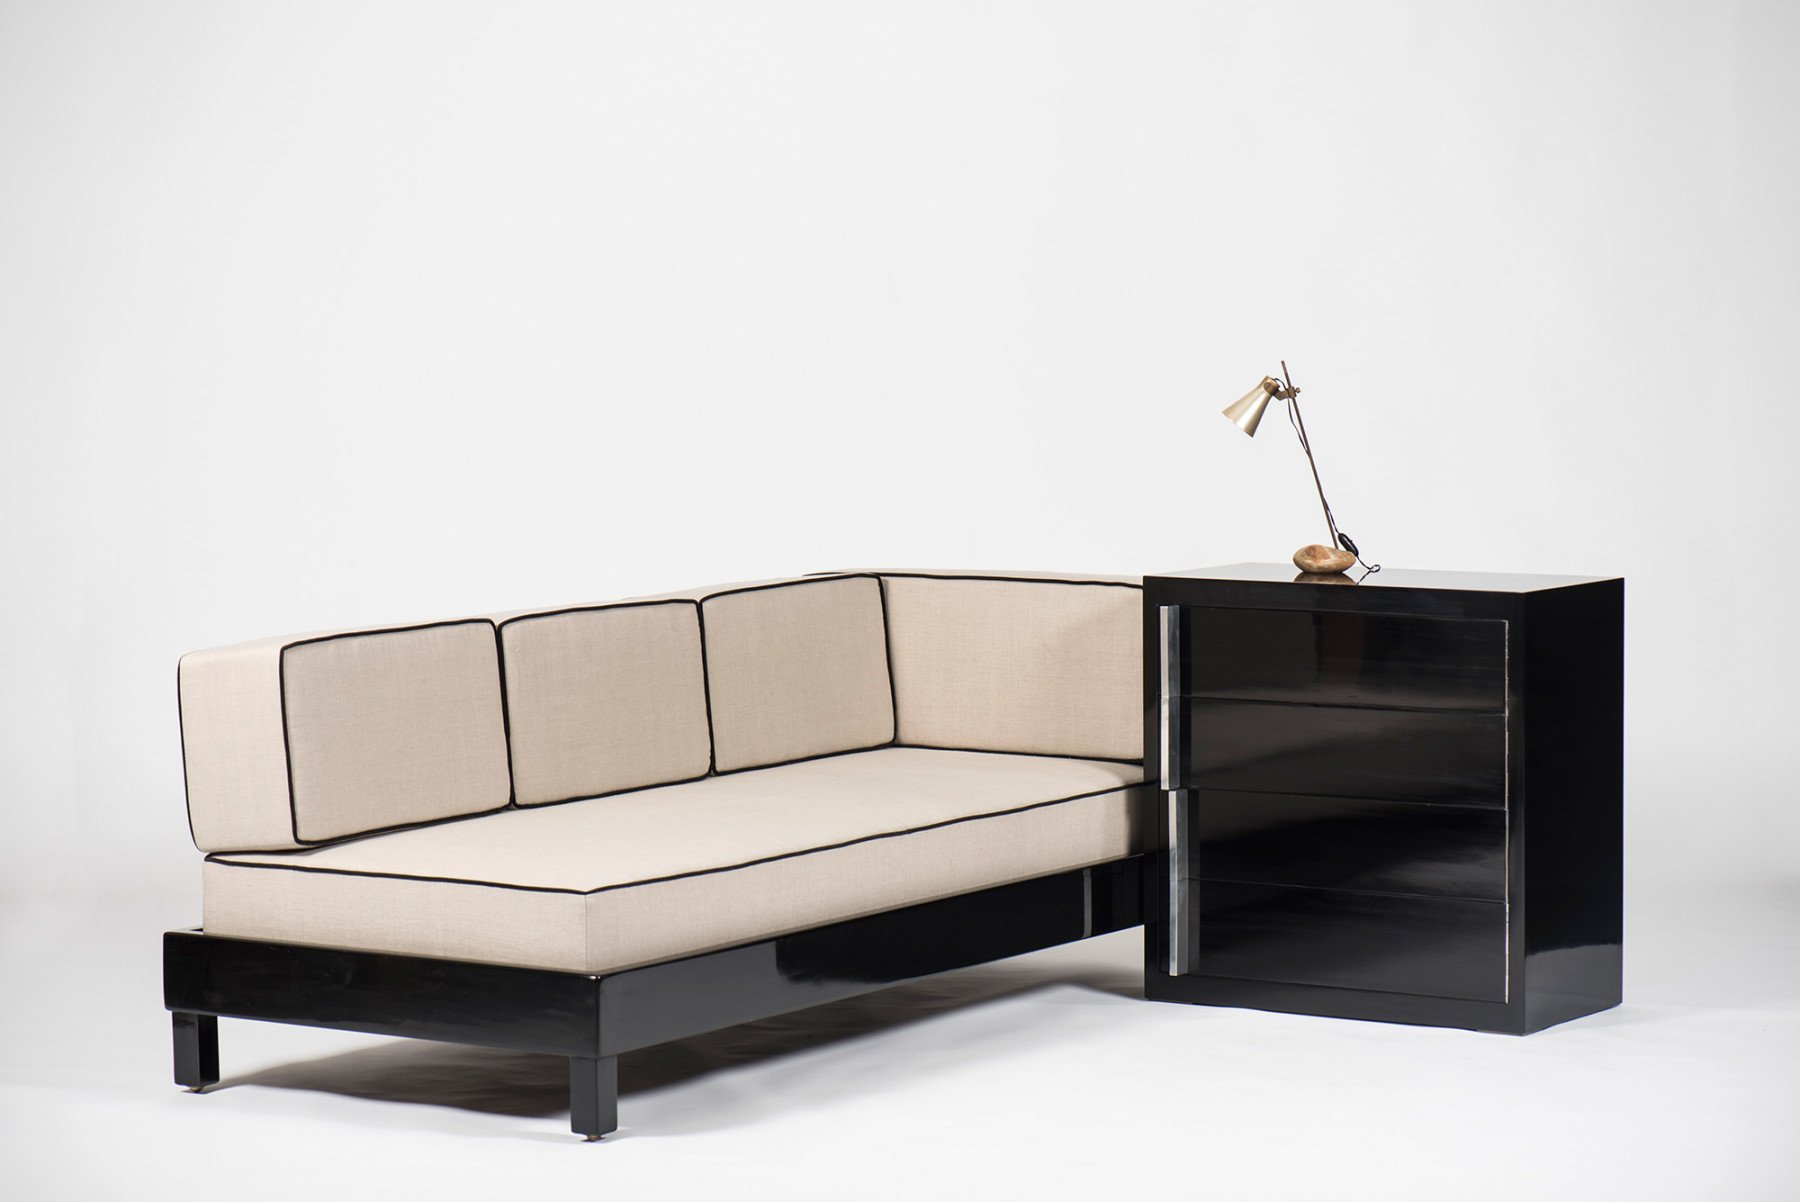 Gino Levi Montalcini |  Daybed and chest of drawers